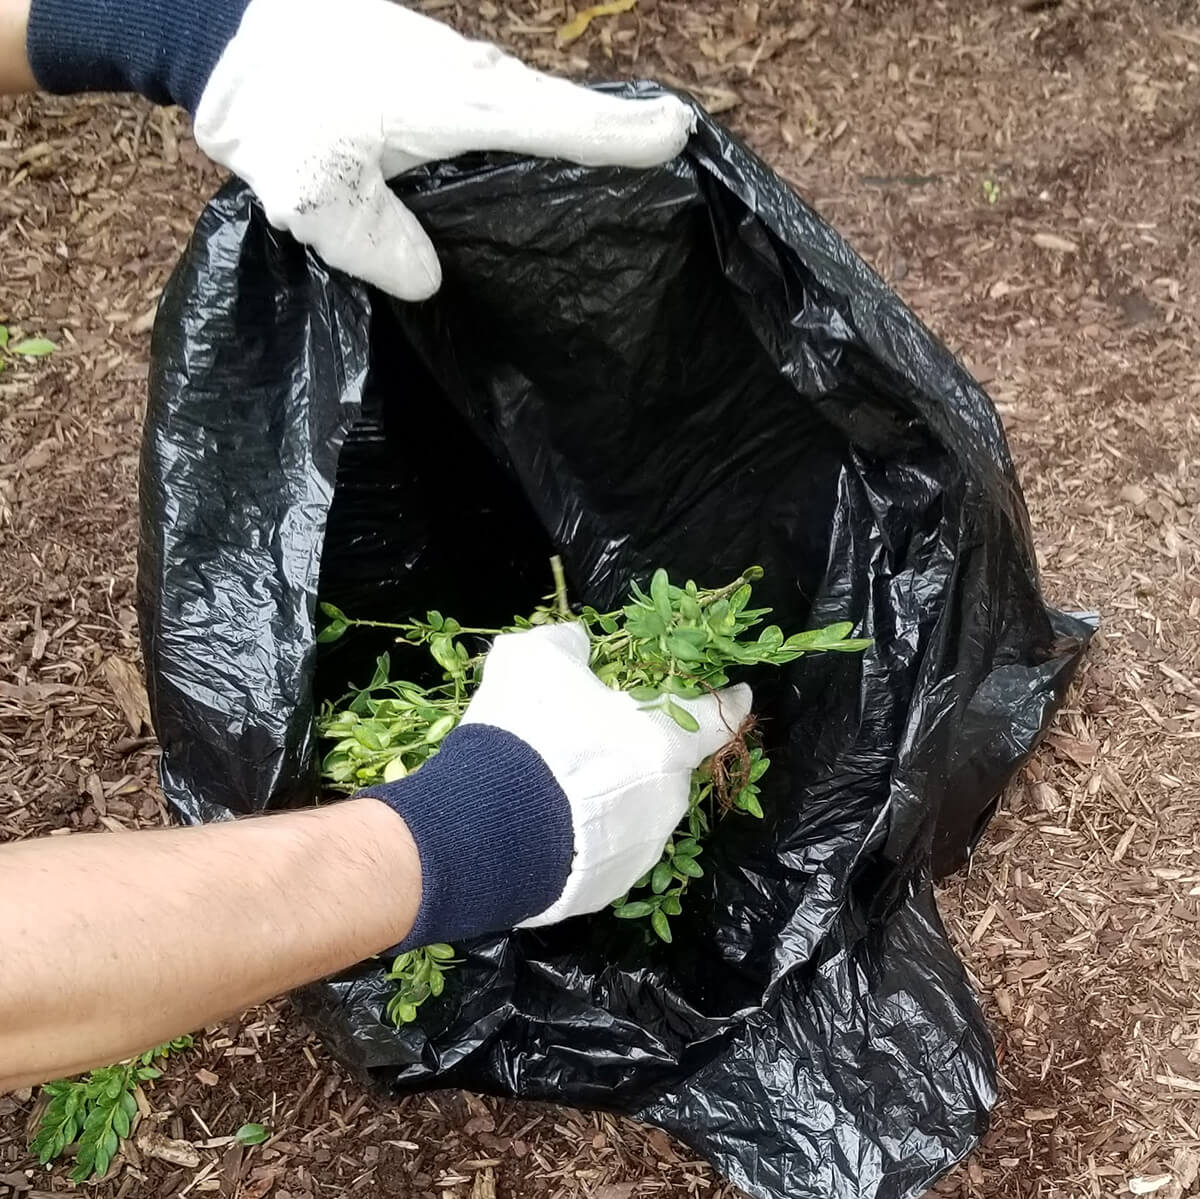 boxwood clippings being placed in a black plastic bag